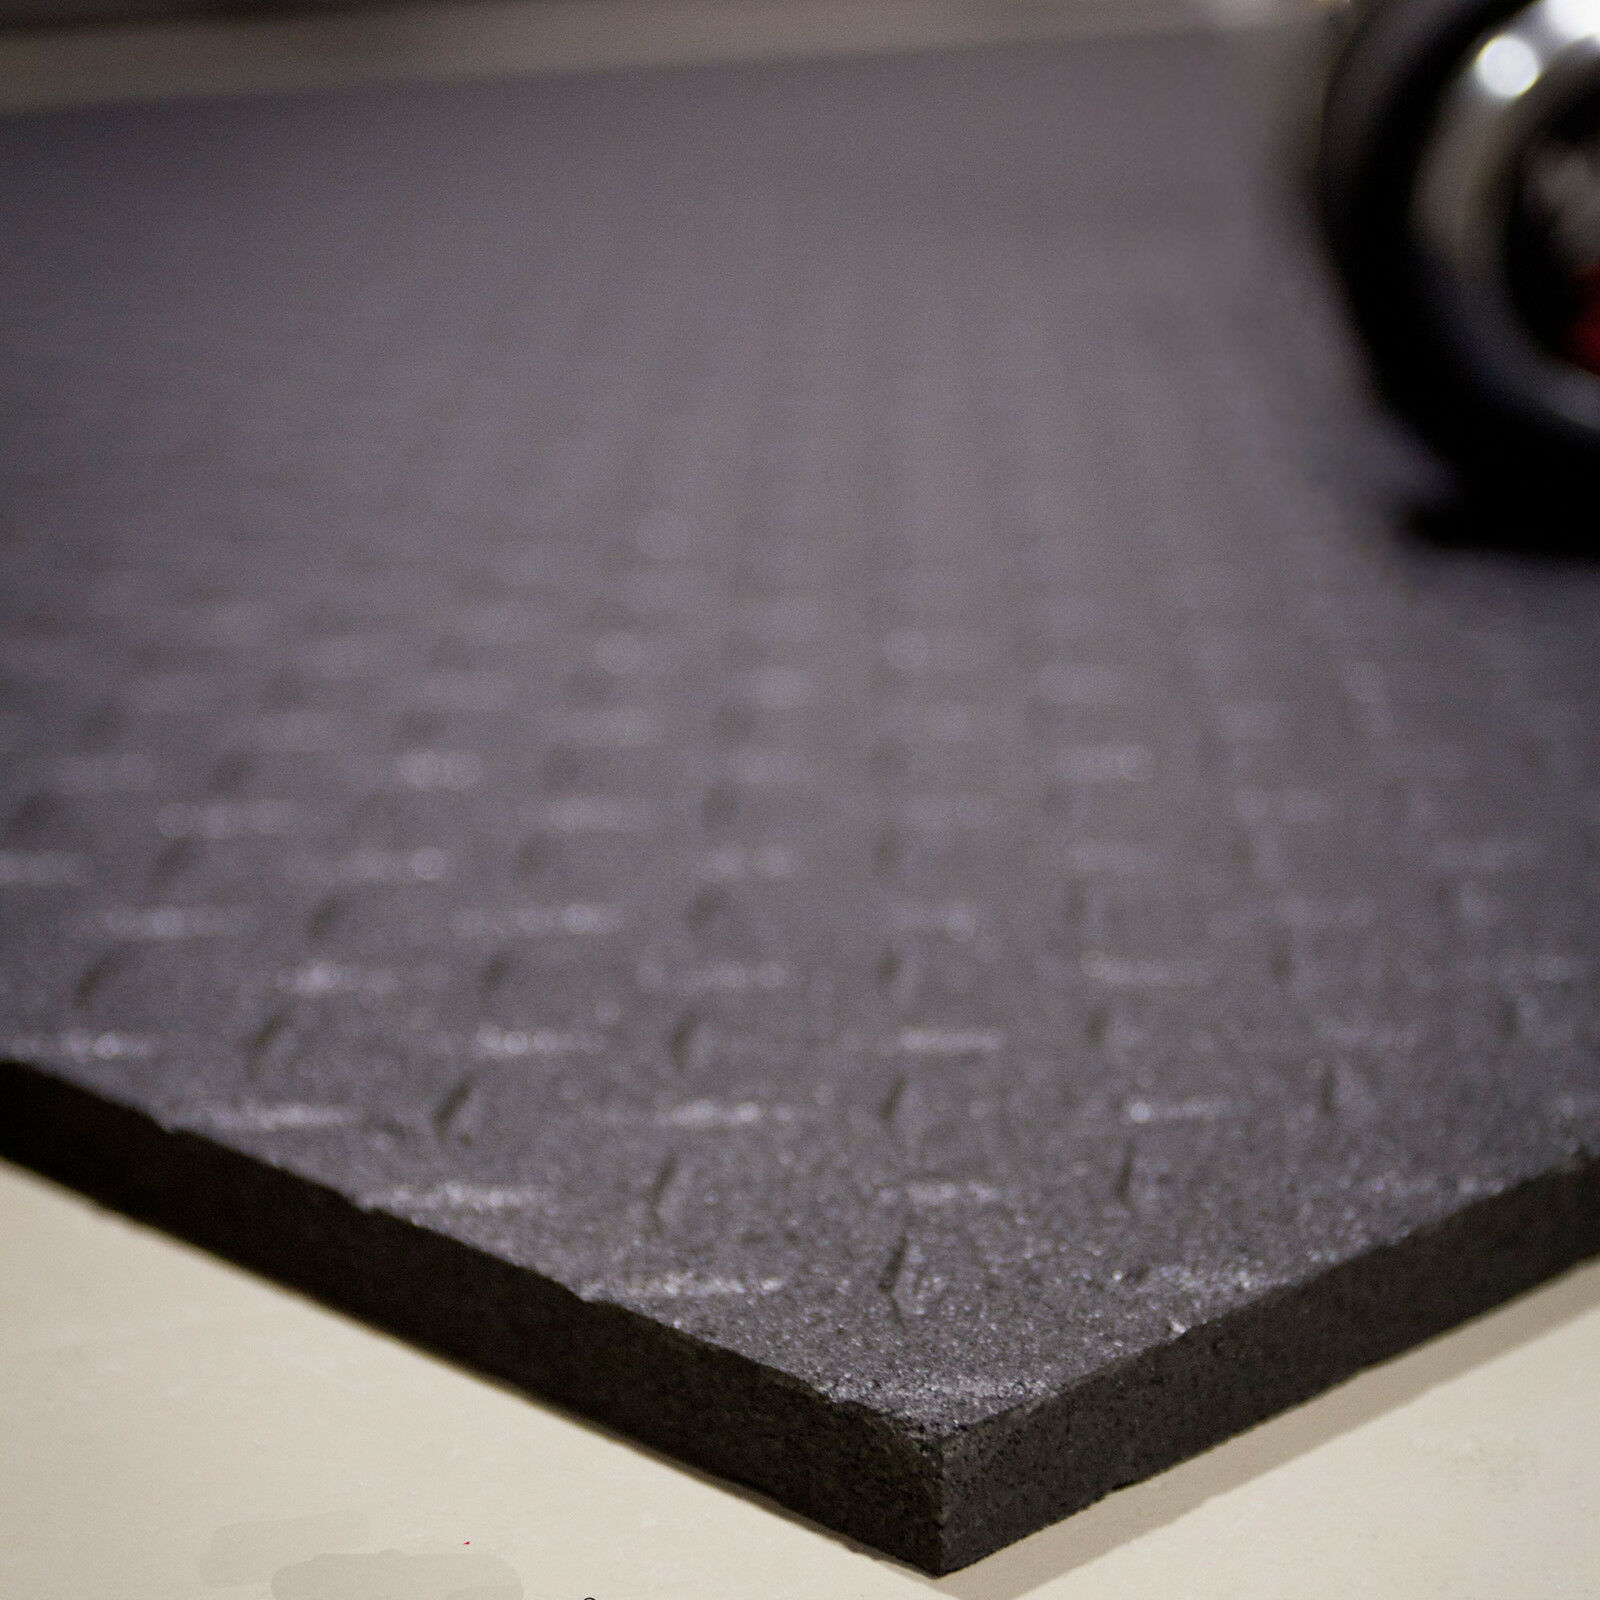 Xmark fitness xmat ultra thick gym flooring ebay picture 1 of 3 doublecrazyfo Choice Image